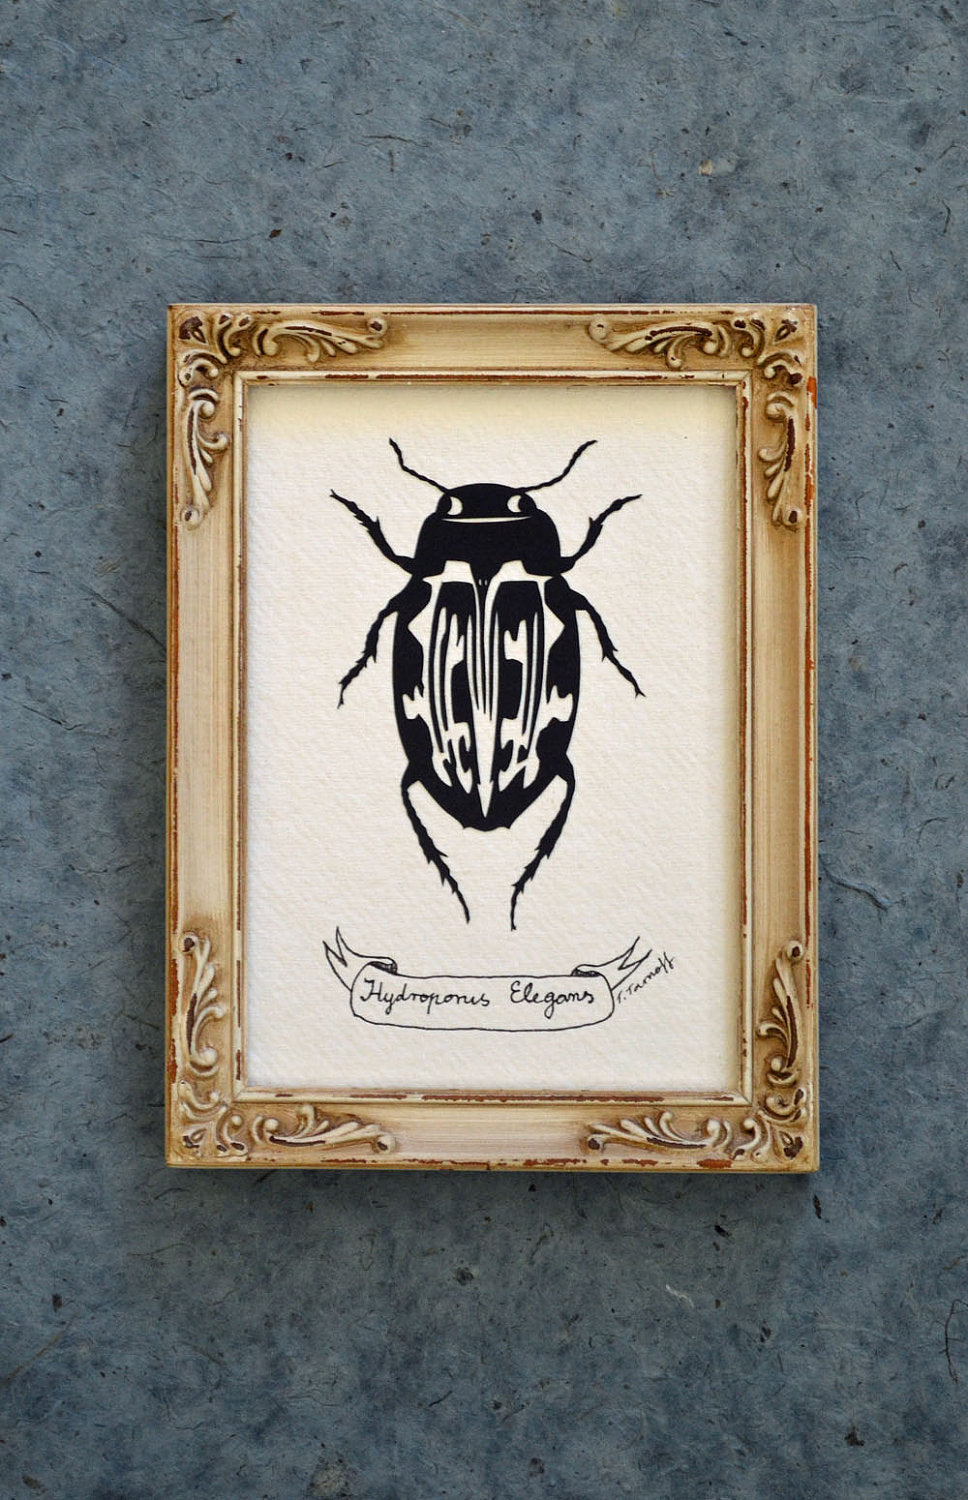 WATER BEETLE Papercut - Hand-Cut Silhouette, Framed